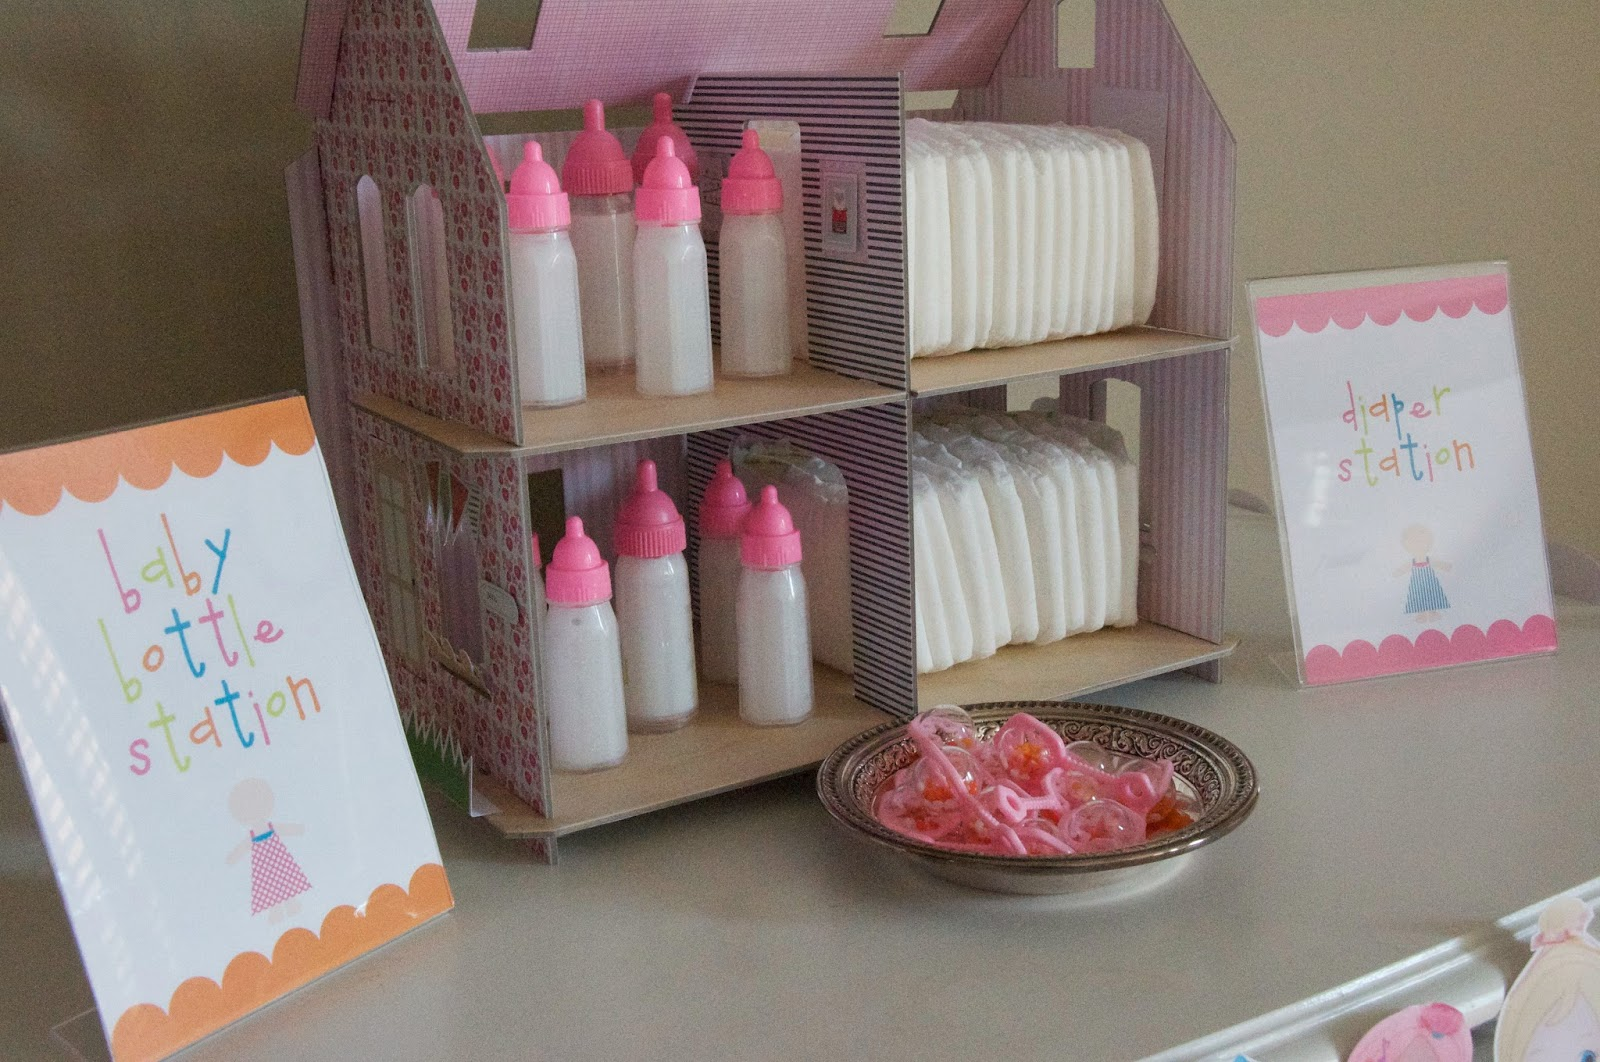 Baby Doll Birthday Decorations Image Inspiration of Cake and